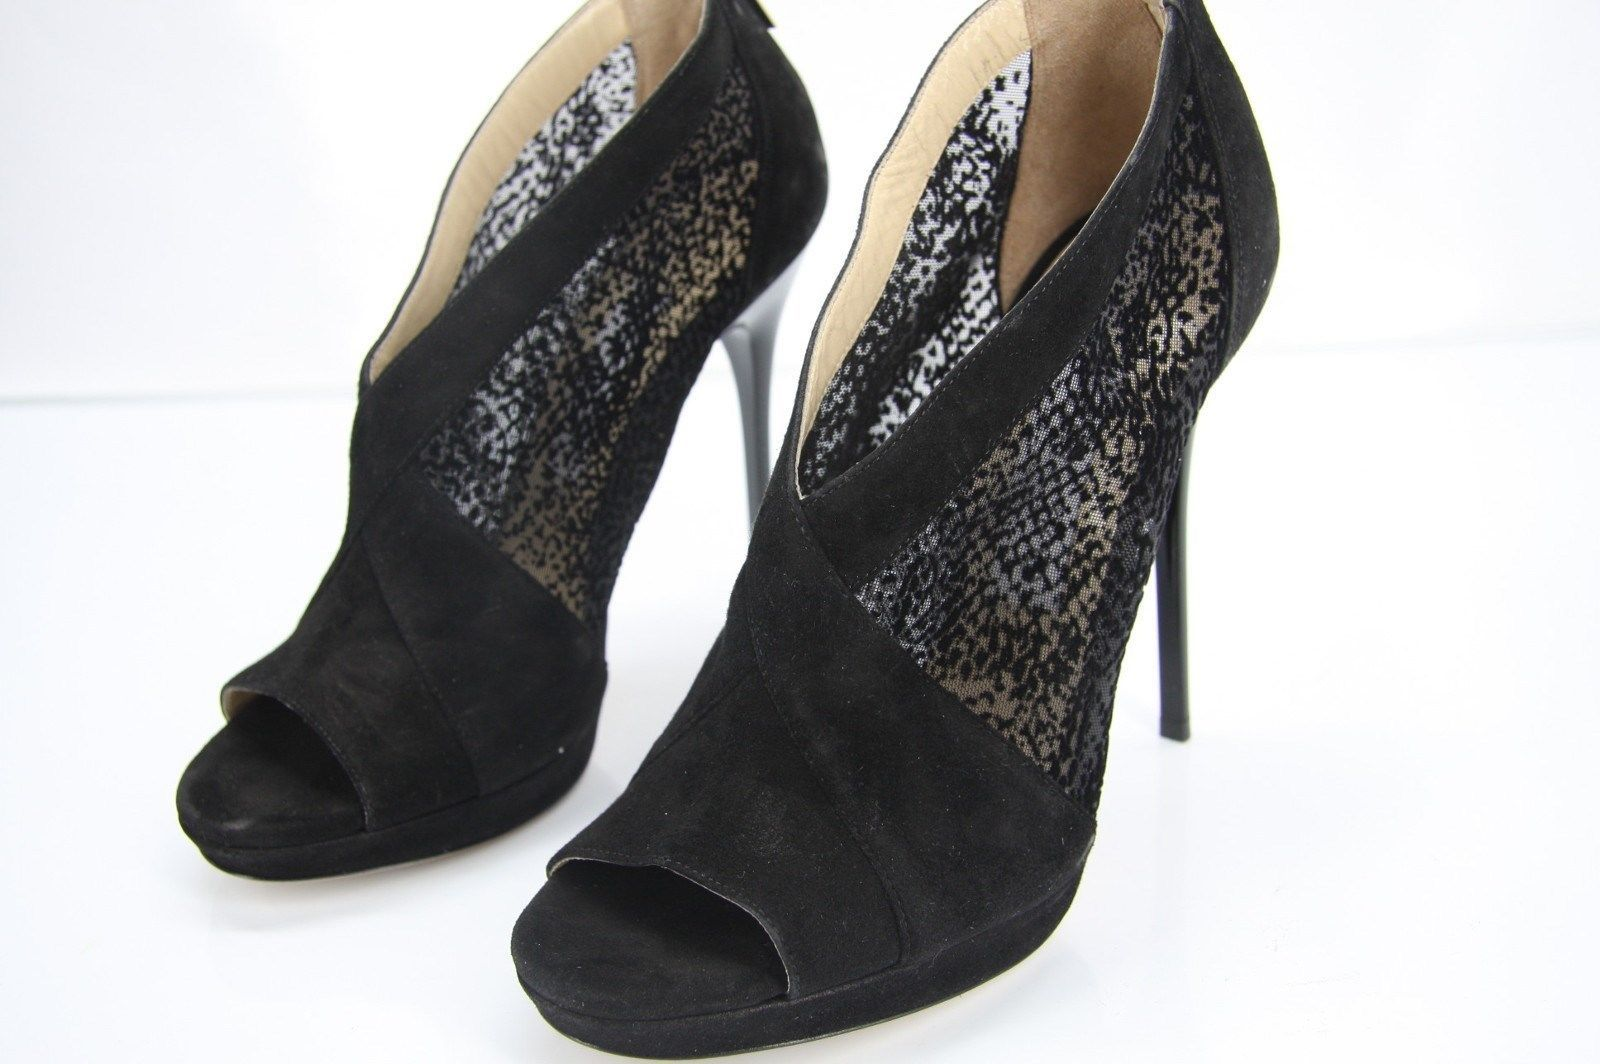 Jimmy Choo Vivid Black Suede Mesh booties SZ 38 New Verrel Open toe $890